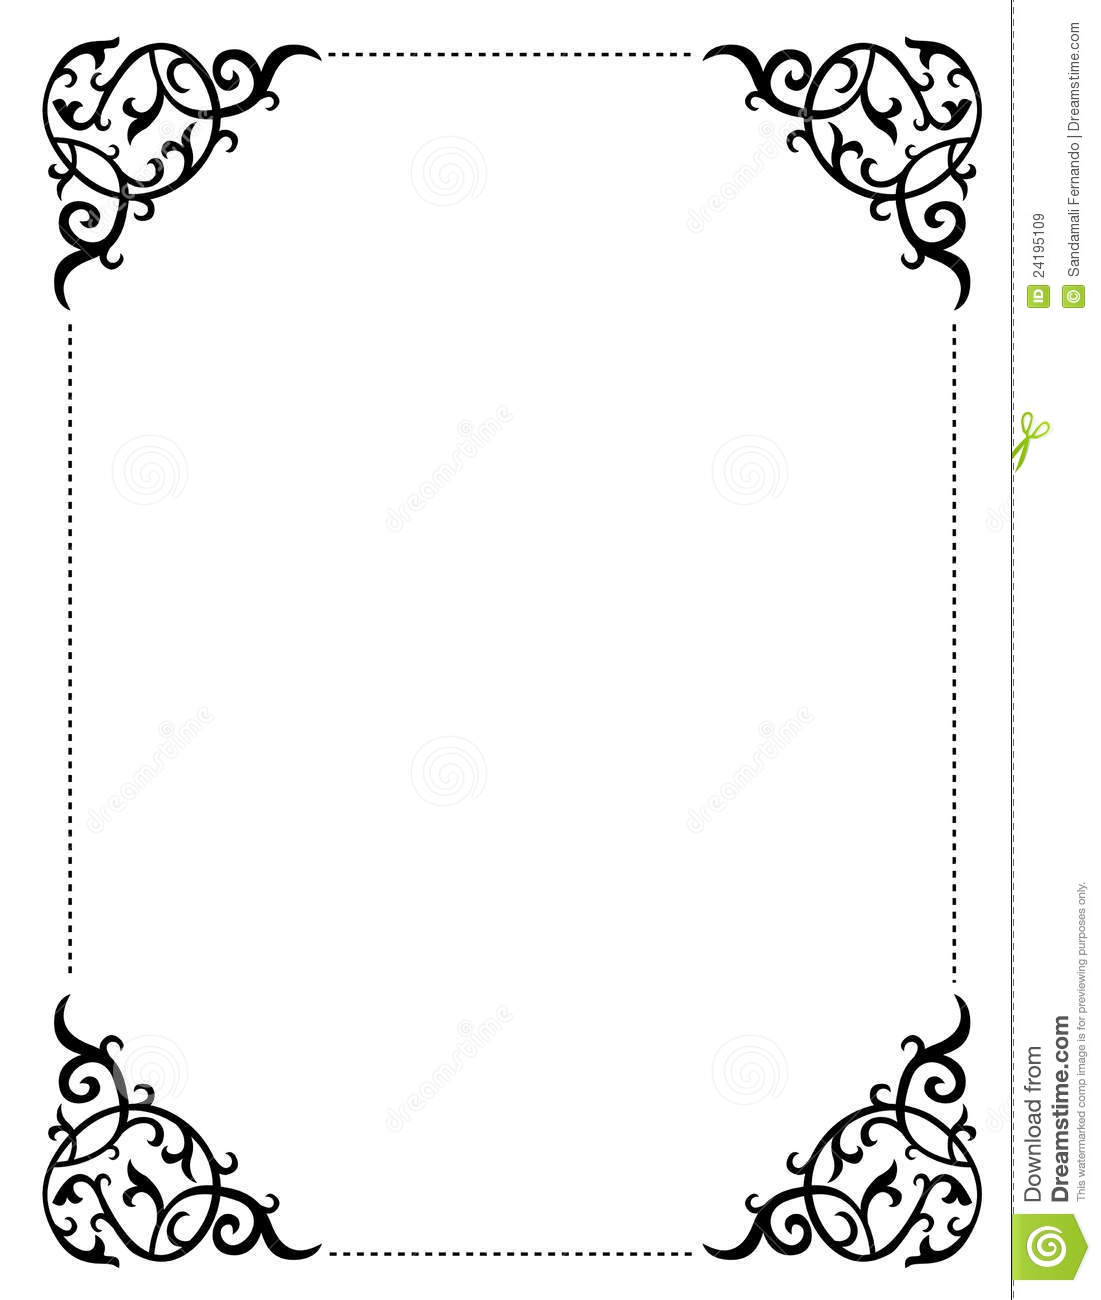 free invitation borders baskan idai co rh baskan idai co free wedding clip art borders for programs free wedding clip art borders for programs